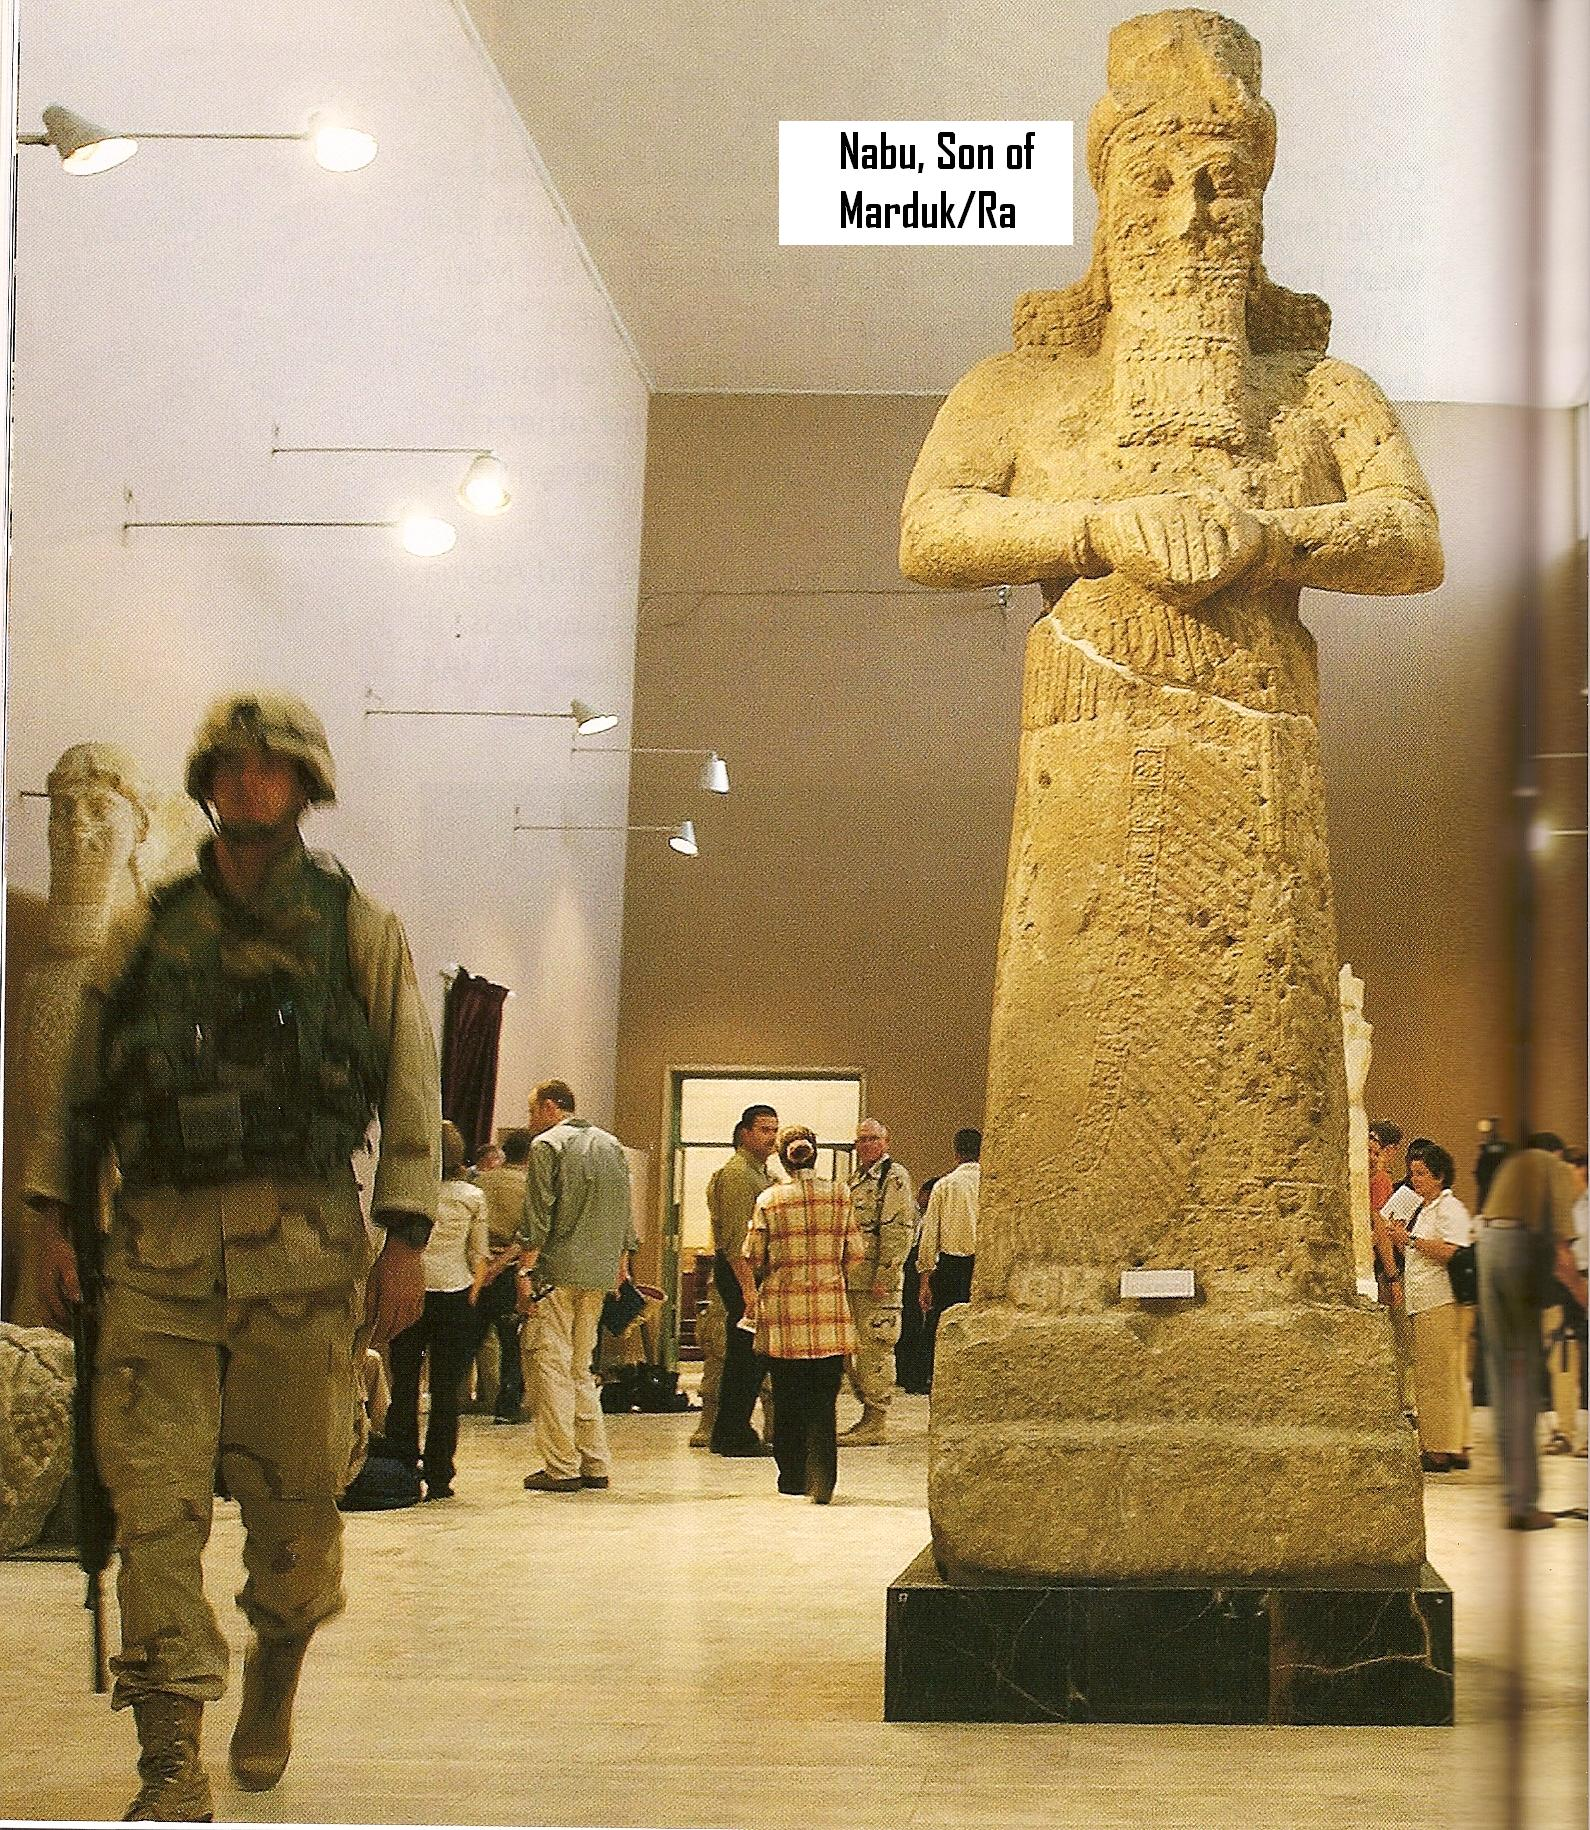 11 - life-sized statue of giant alien god Nabu, & US Army in Iraq; this artifact now shamefully destroyed by Radical Islam